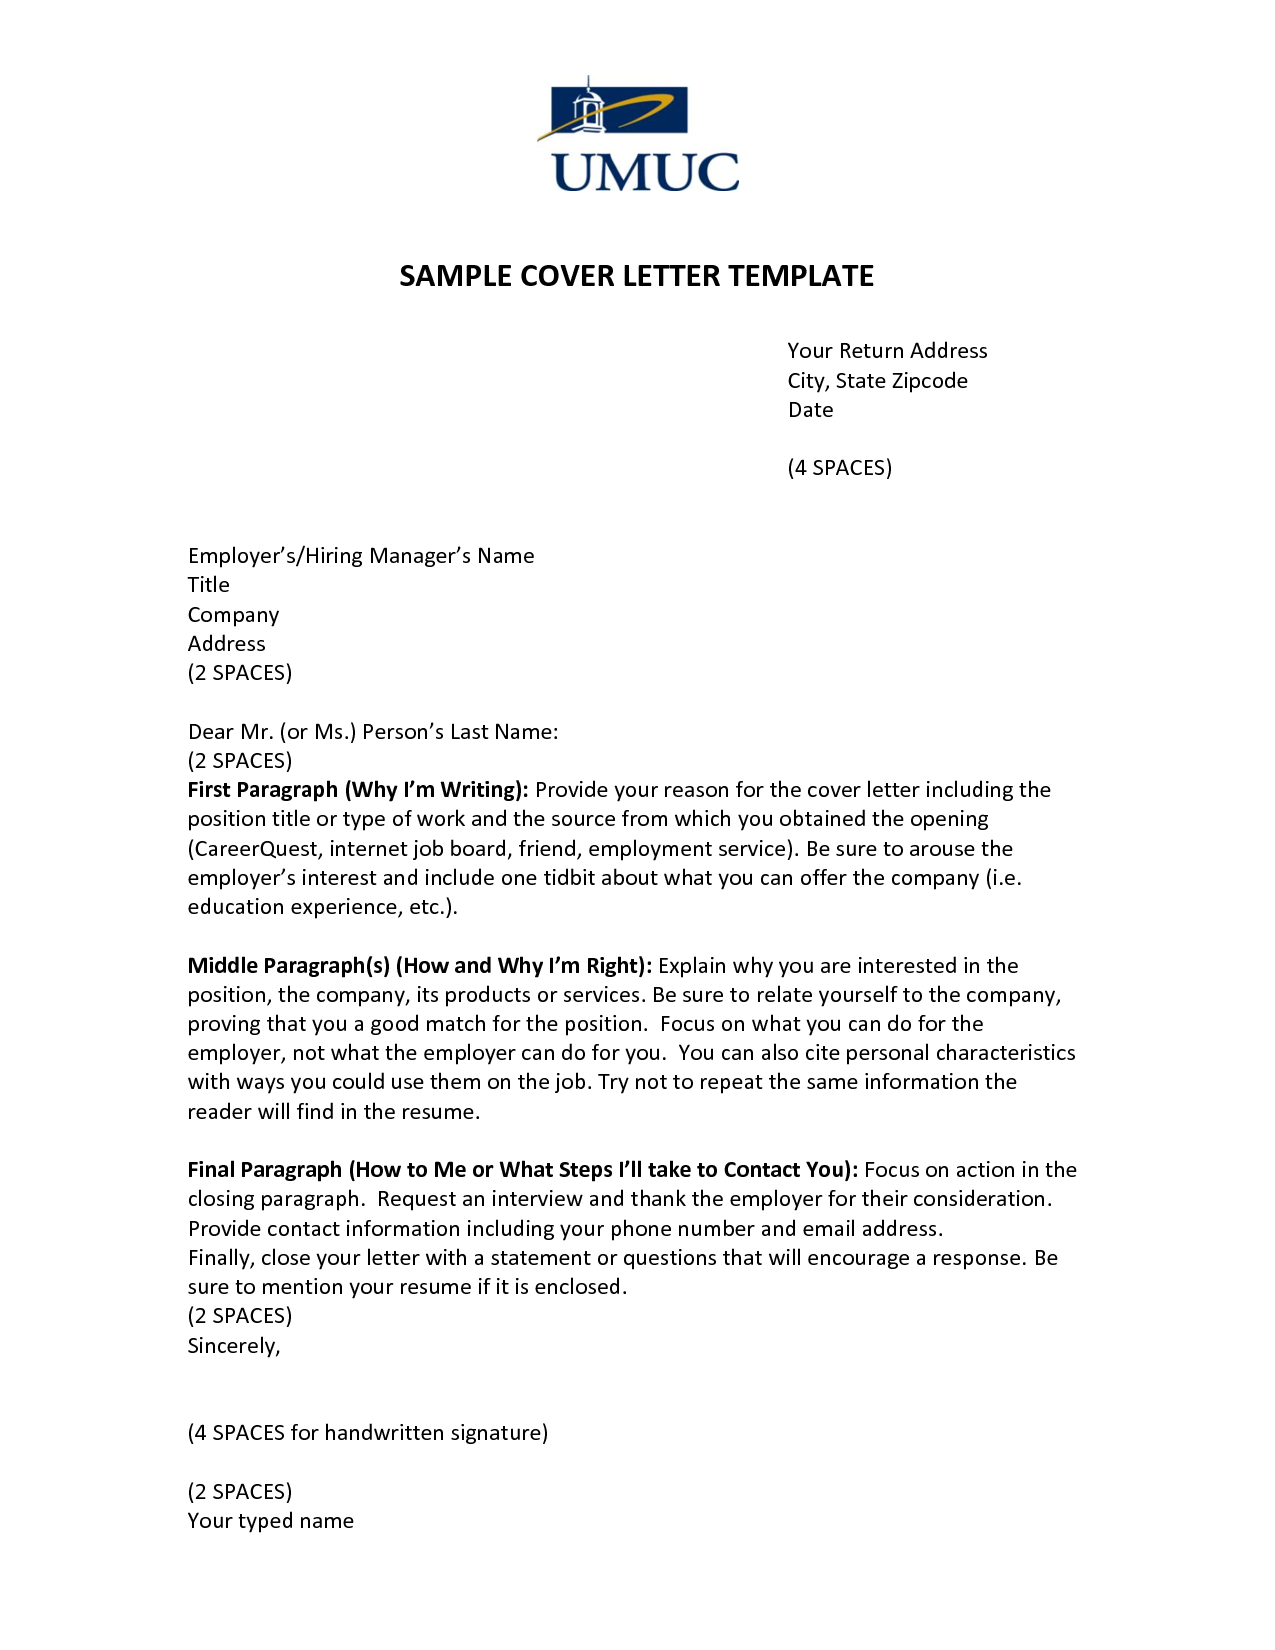 sample cover letter template umucover letter template application letter sample